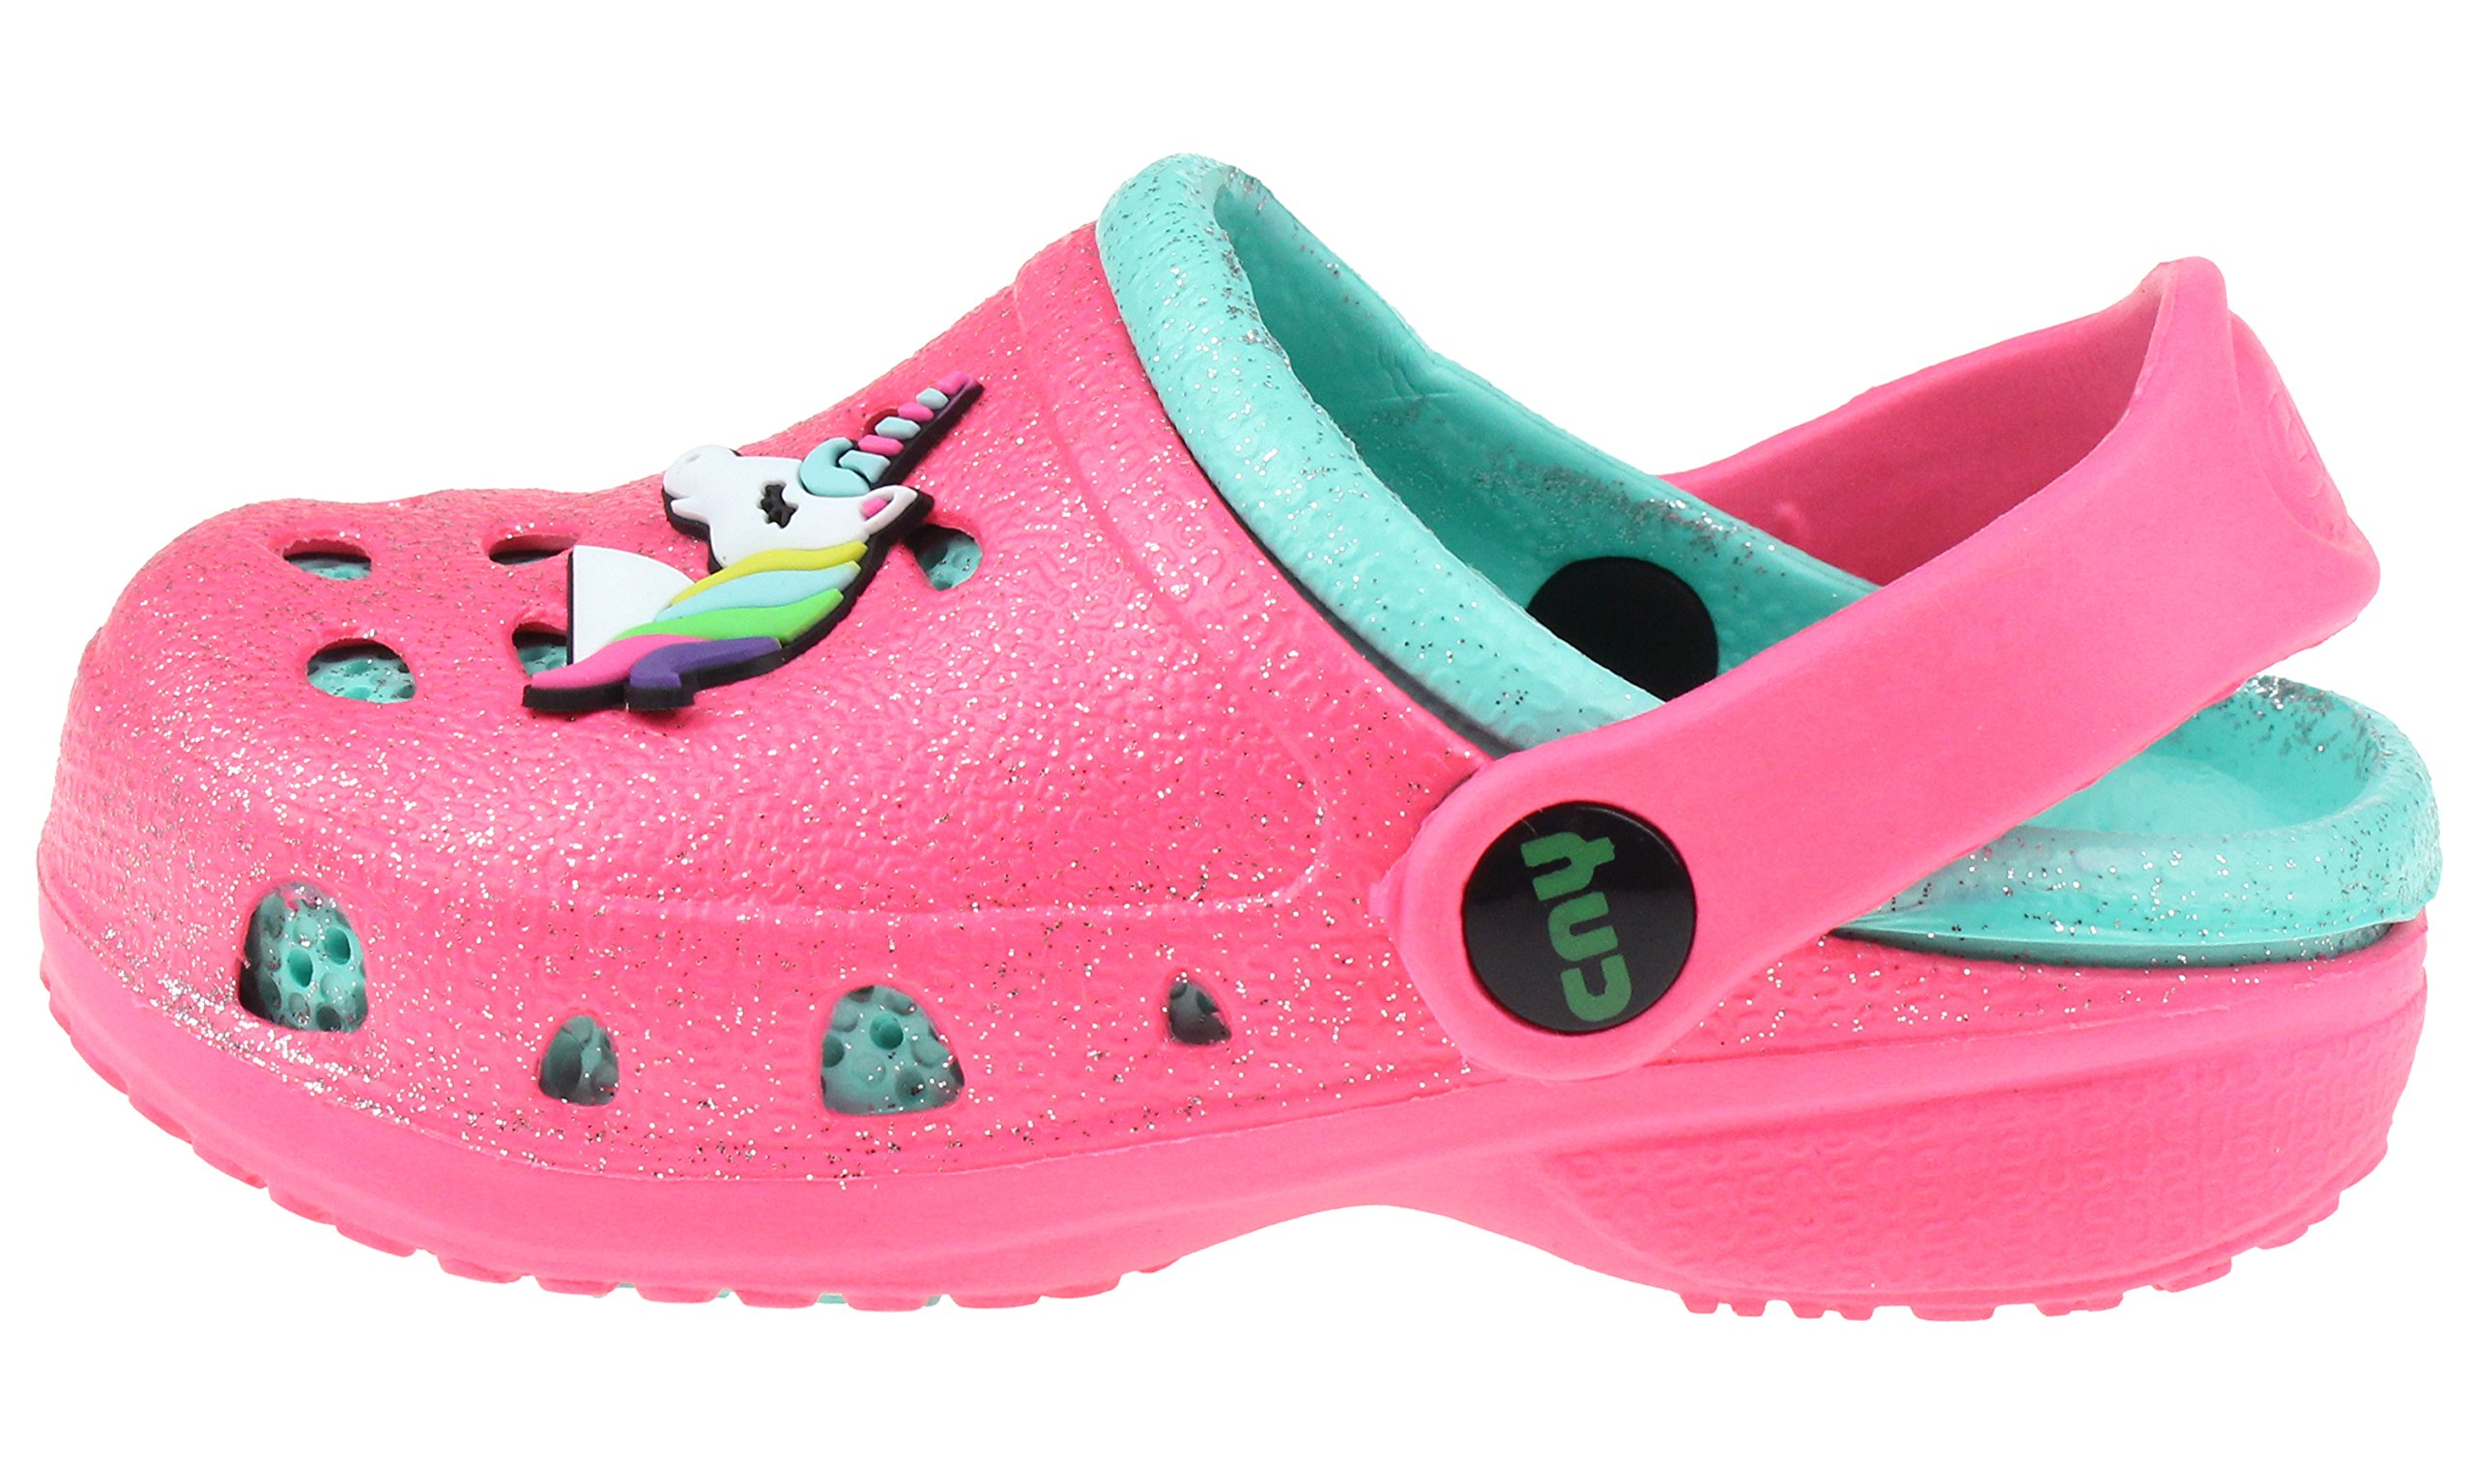 Capelli New York Toddler Girls Allover Glitter Clog with Unicorn Jelly Patch Pink 6/7 by Capelli New York (Image #2)